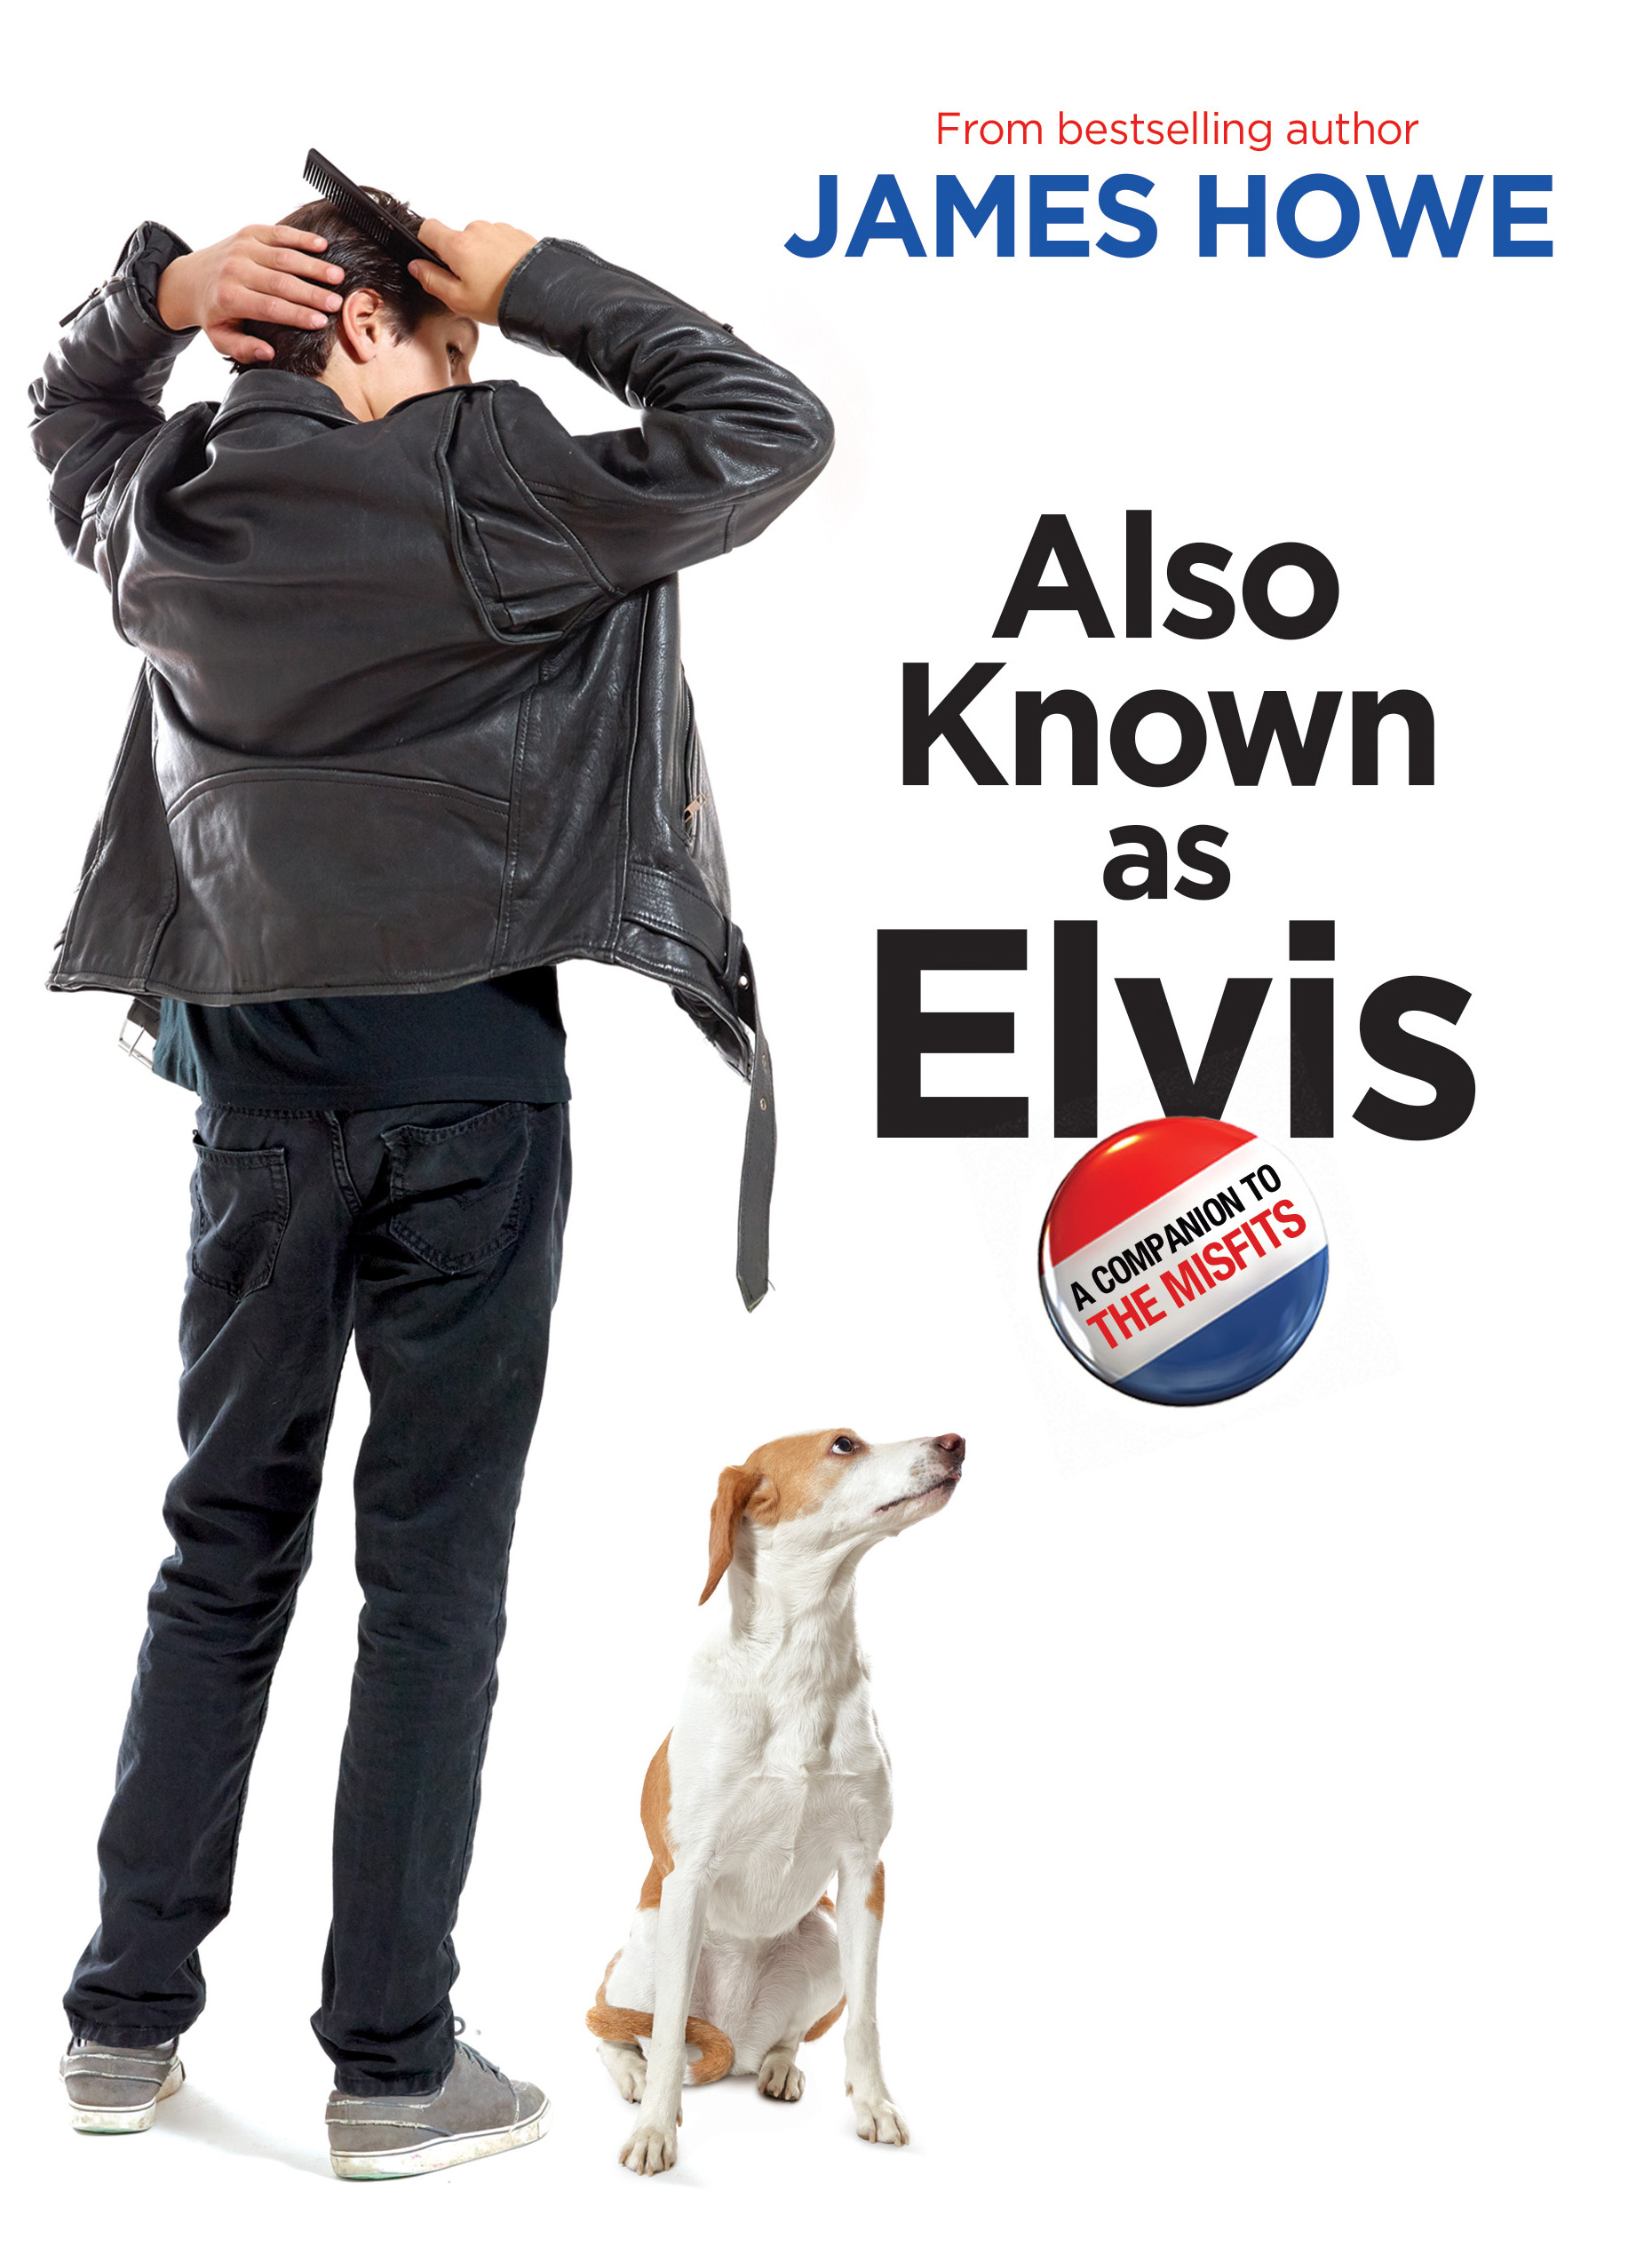 Also-known-as-elvis-9781442445109_hr